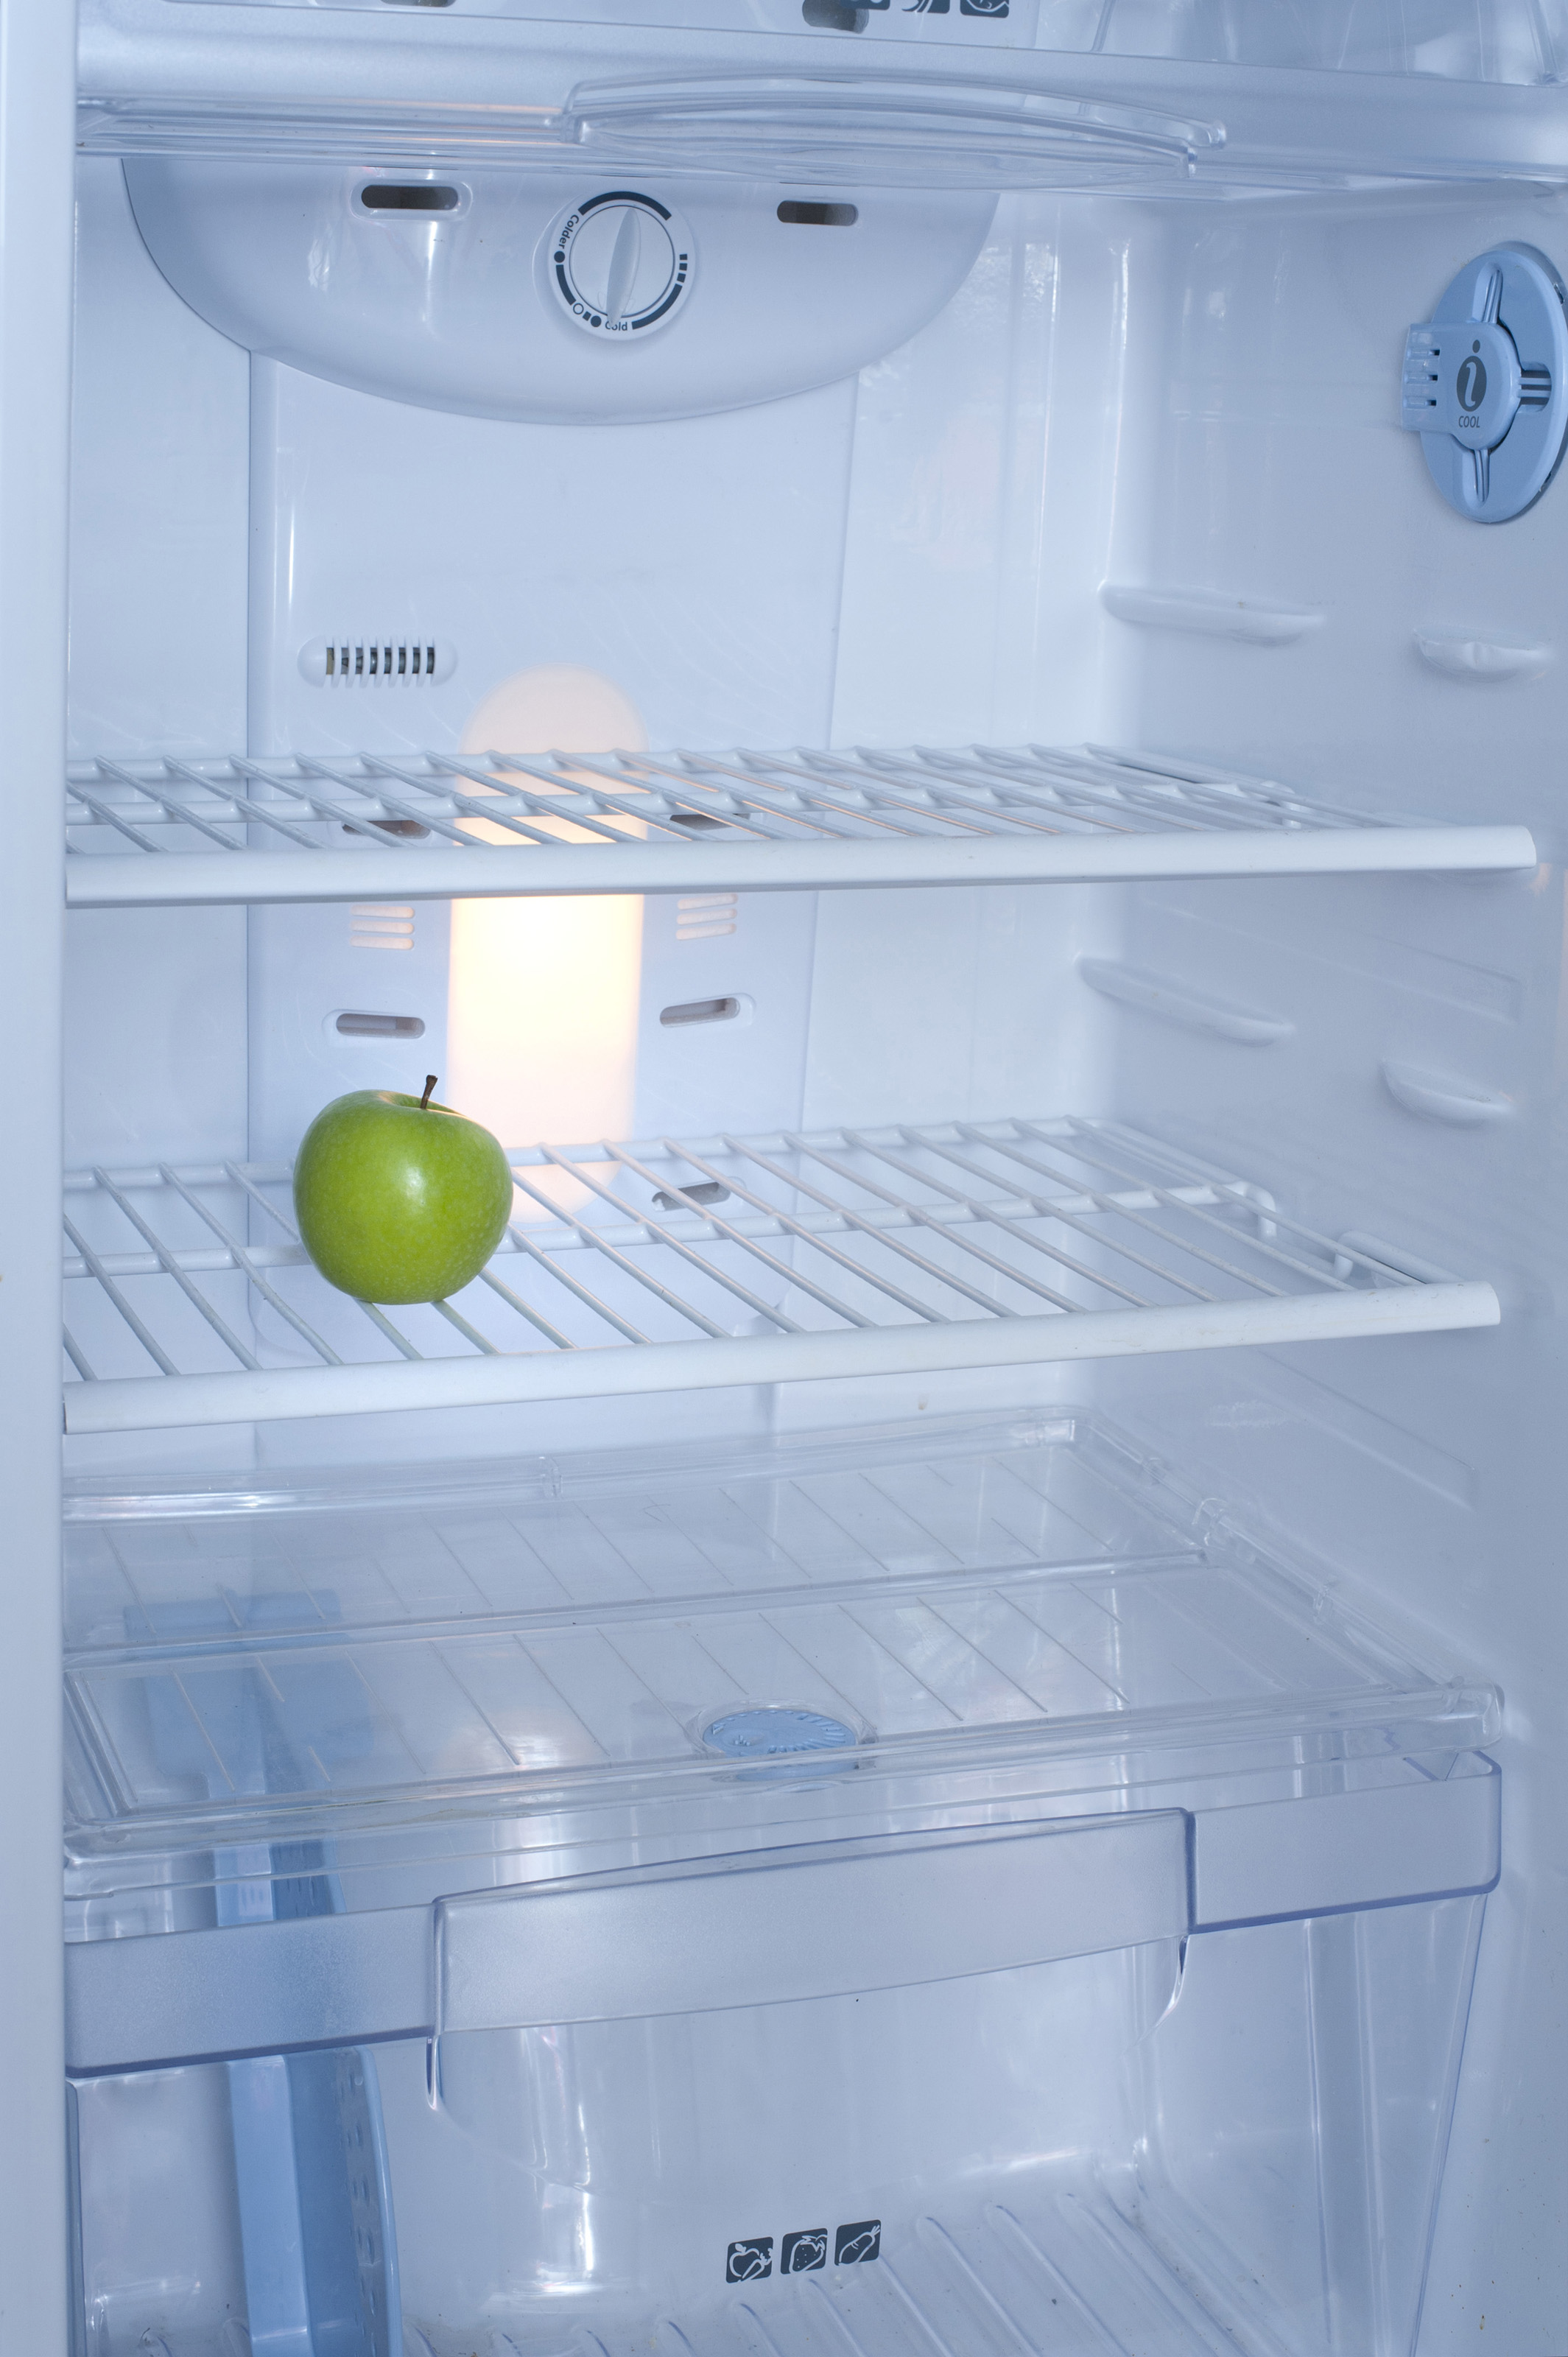 Free Stock Photo 8219 Interior Of A Fridge With A Green Apple Freeimageslive